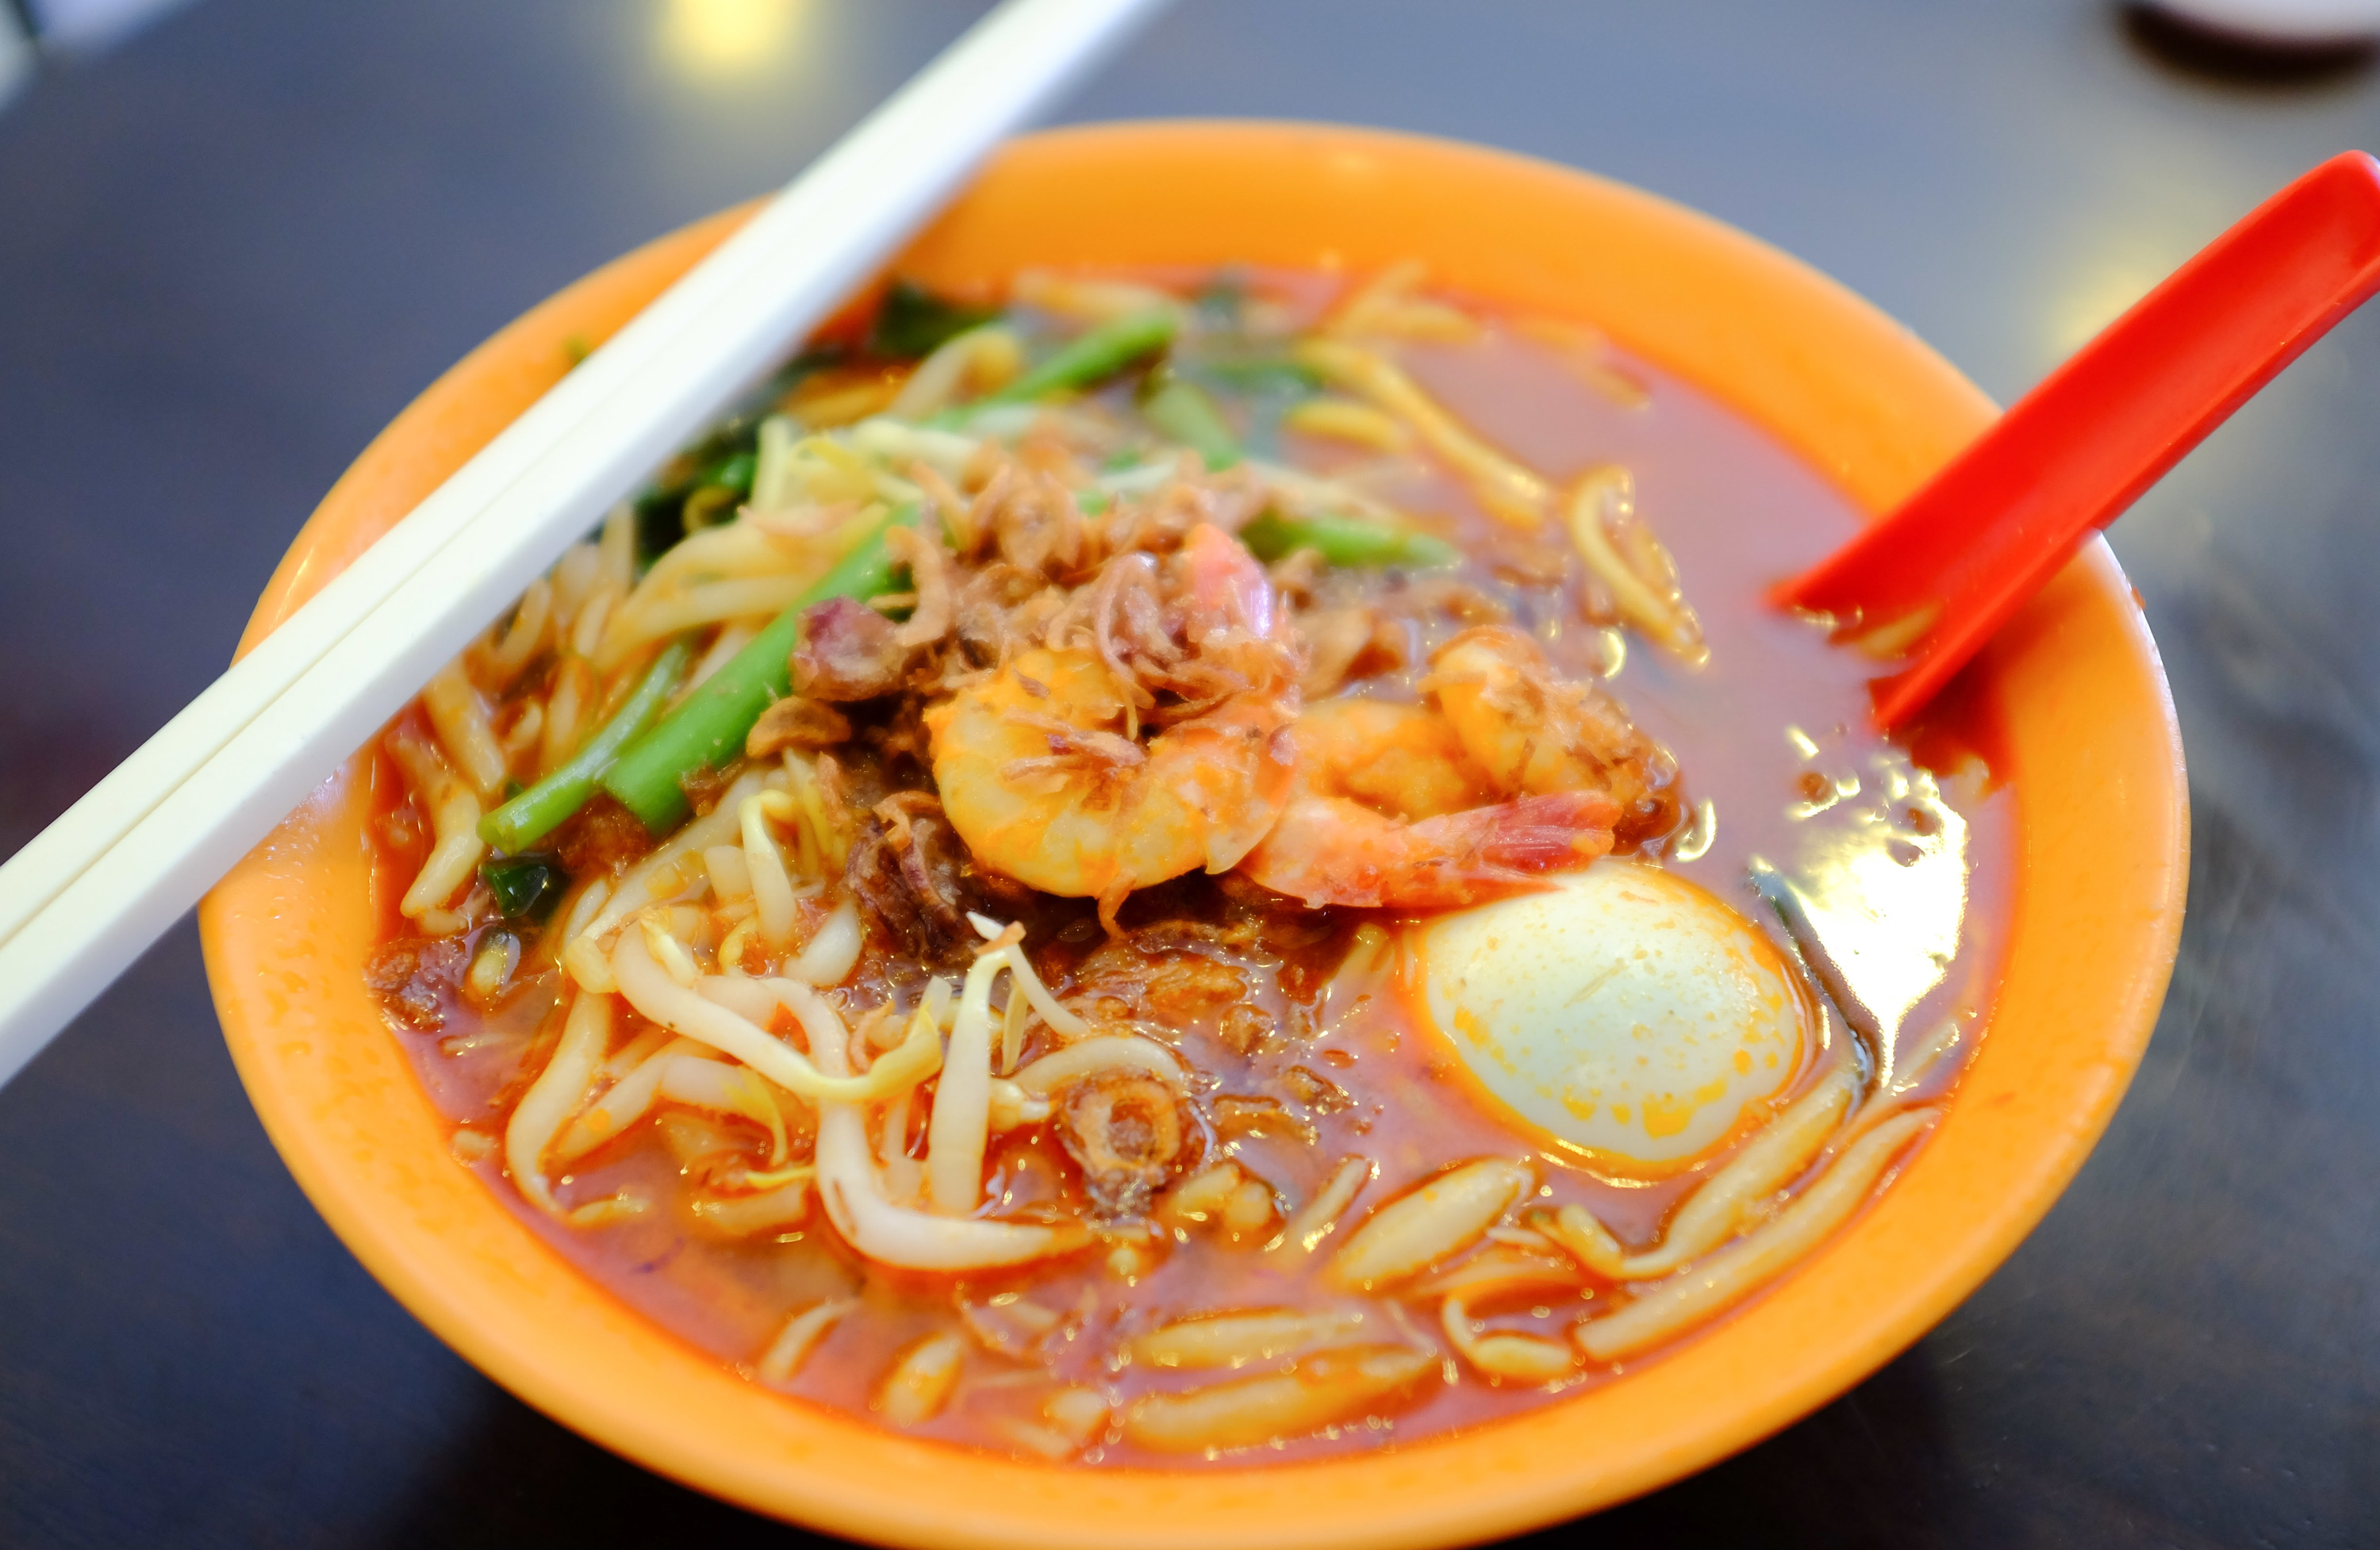 Prawn mee at Choon Prawn Mee House